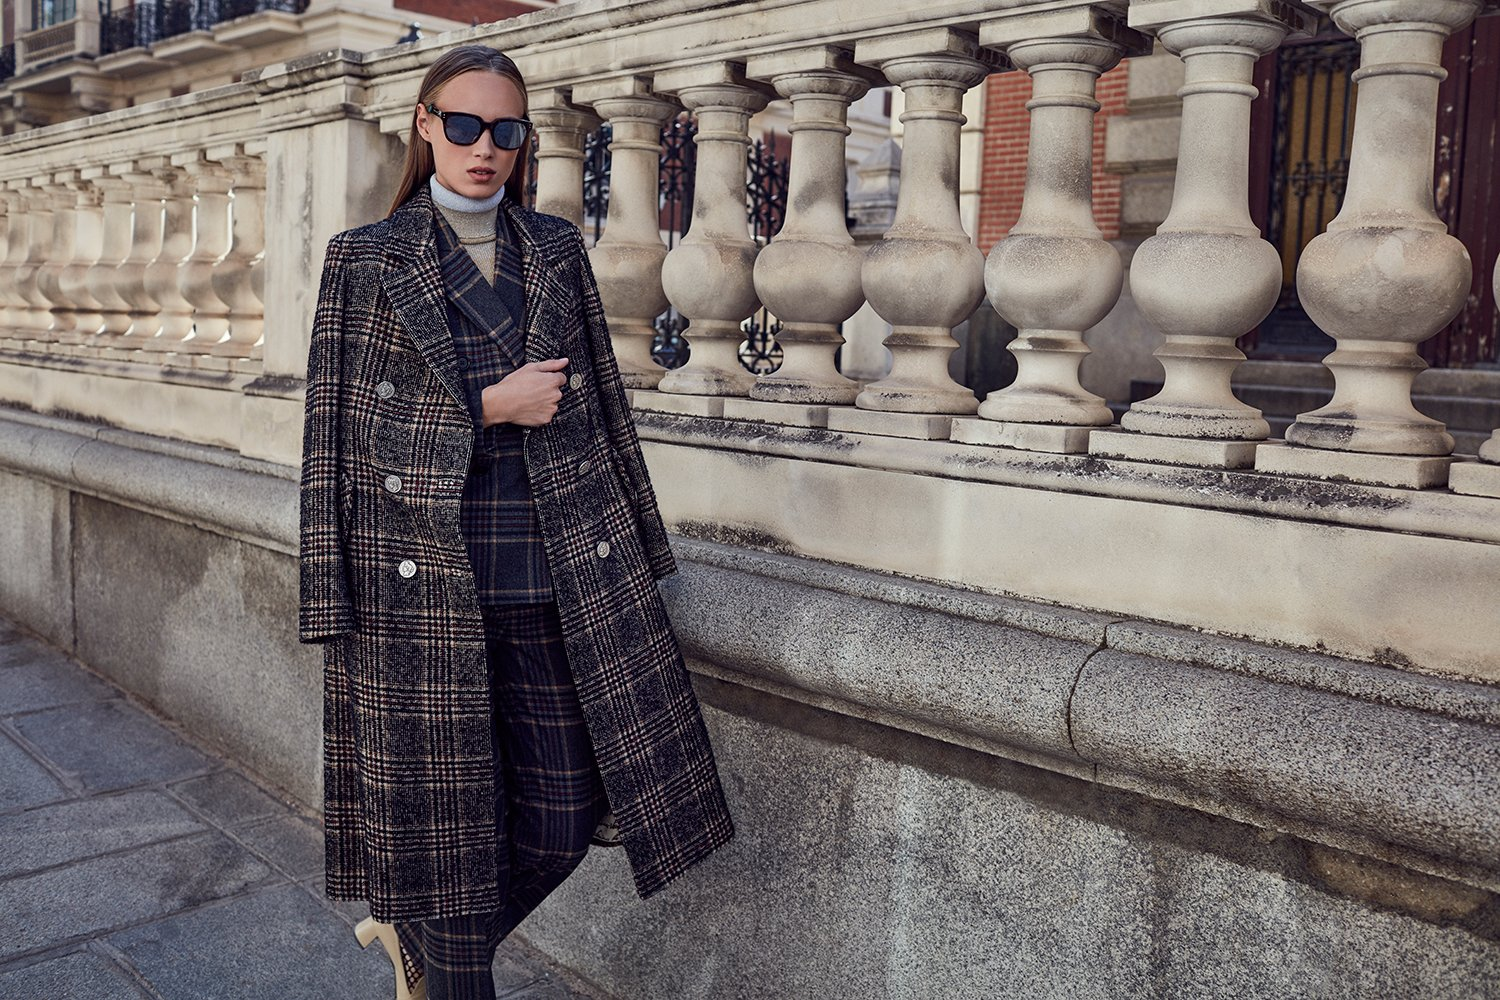 Long brown glen plaid coat / Dark gray and beige striped jacket with a masculine cut / Brown checked straight pants / Black and beige leather Cézanne pumps - Roberto Verino